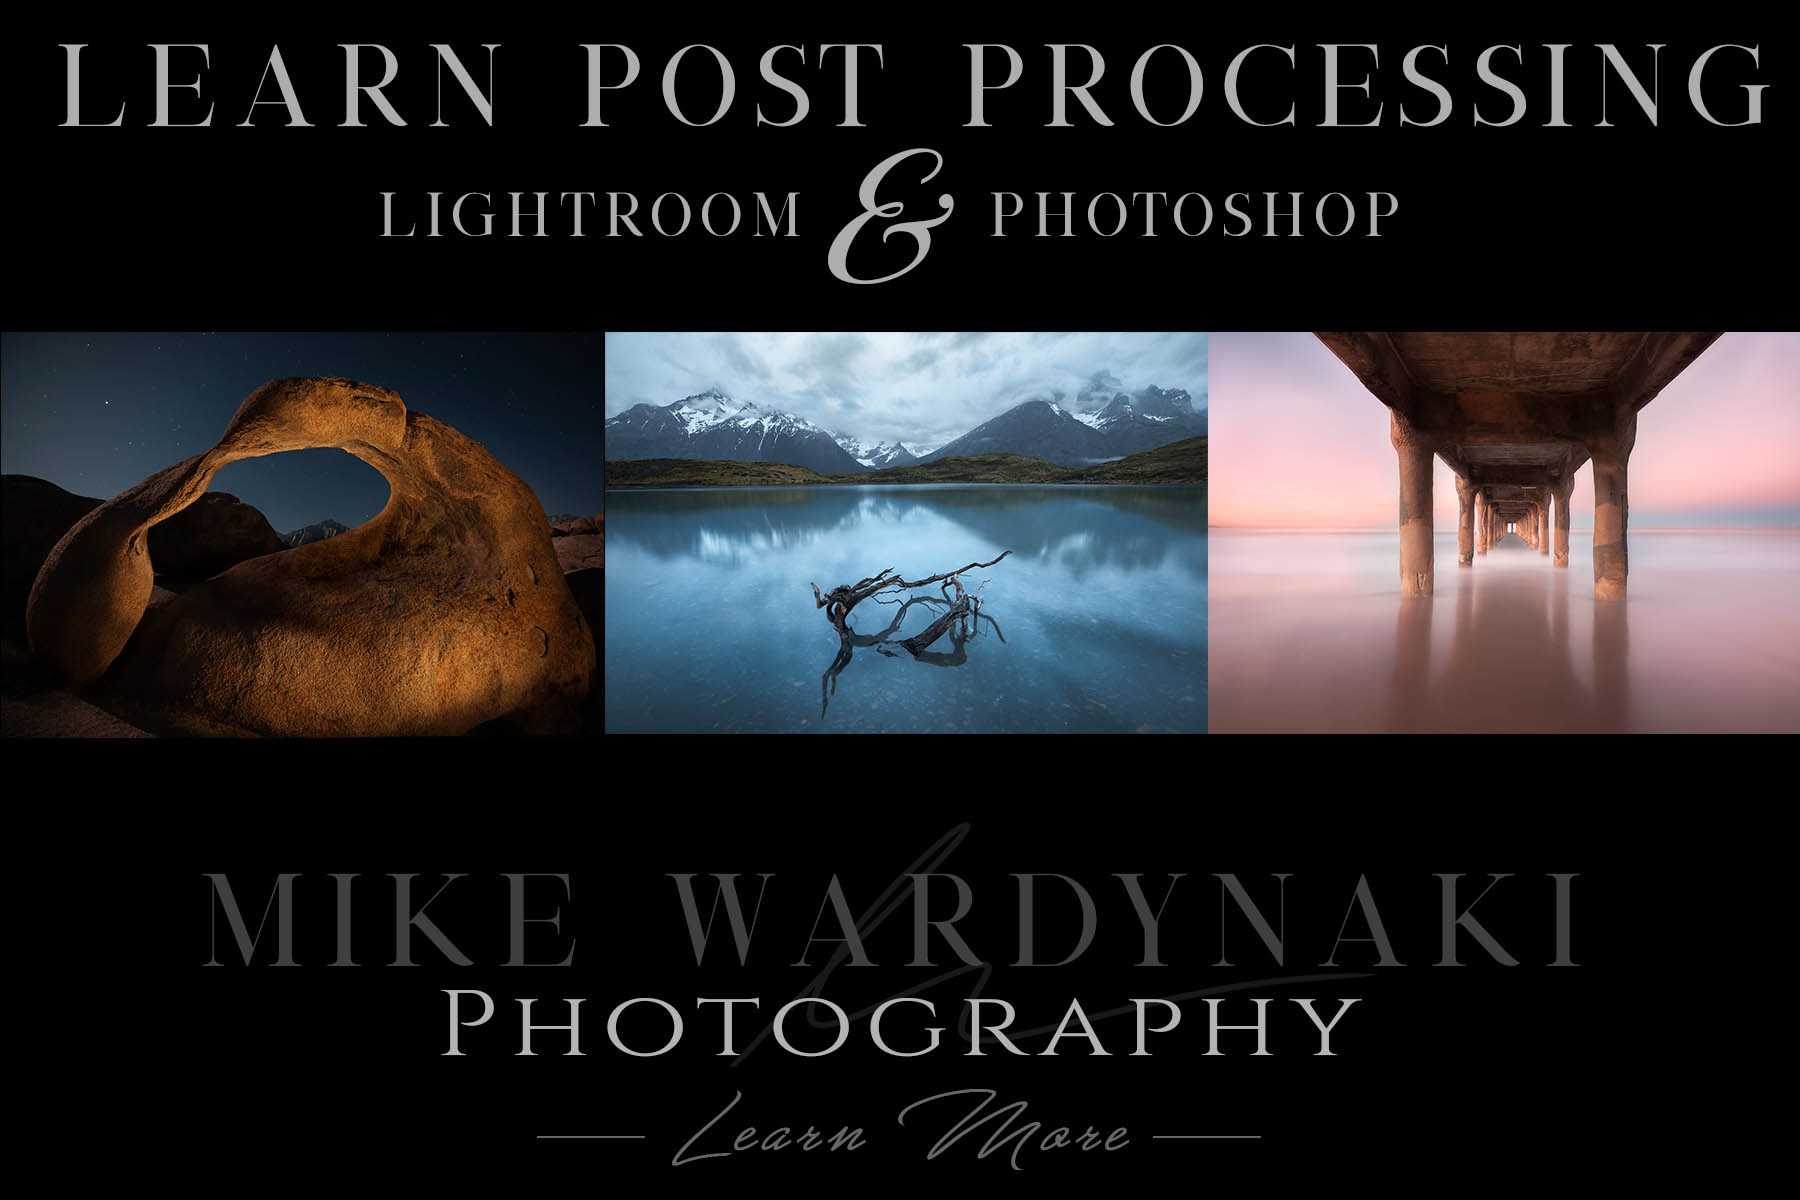 Learn post processing